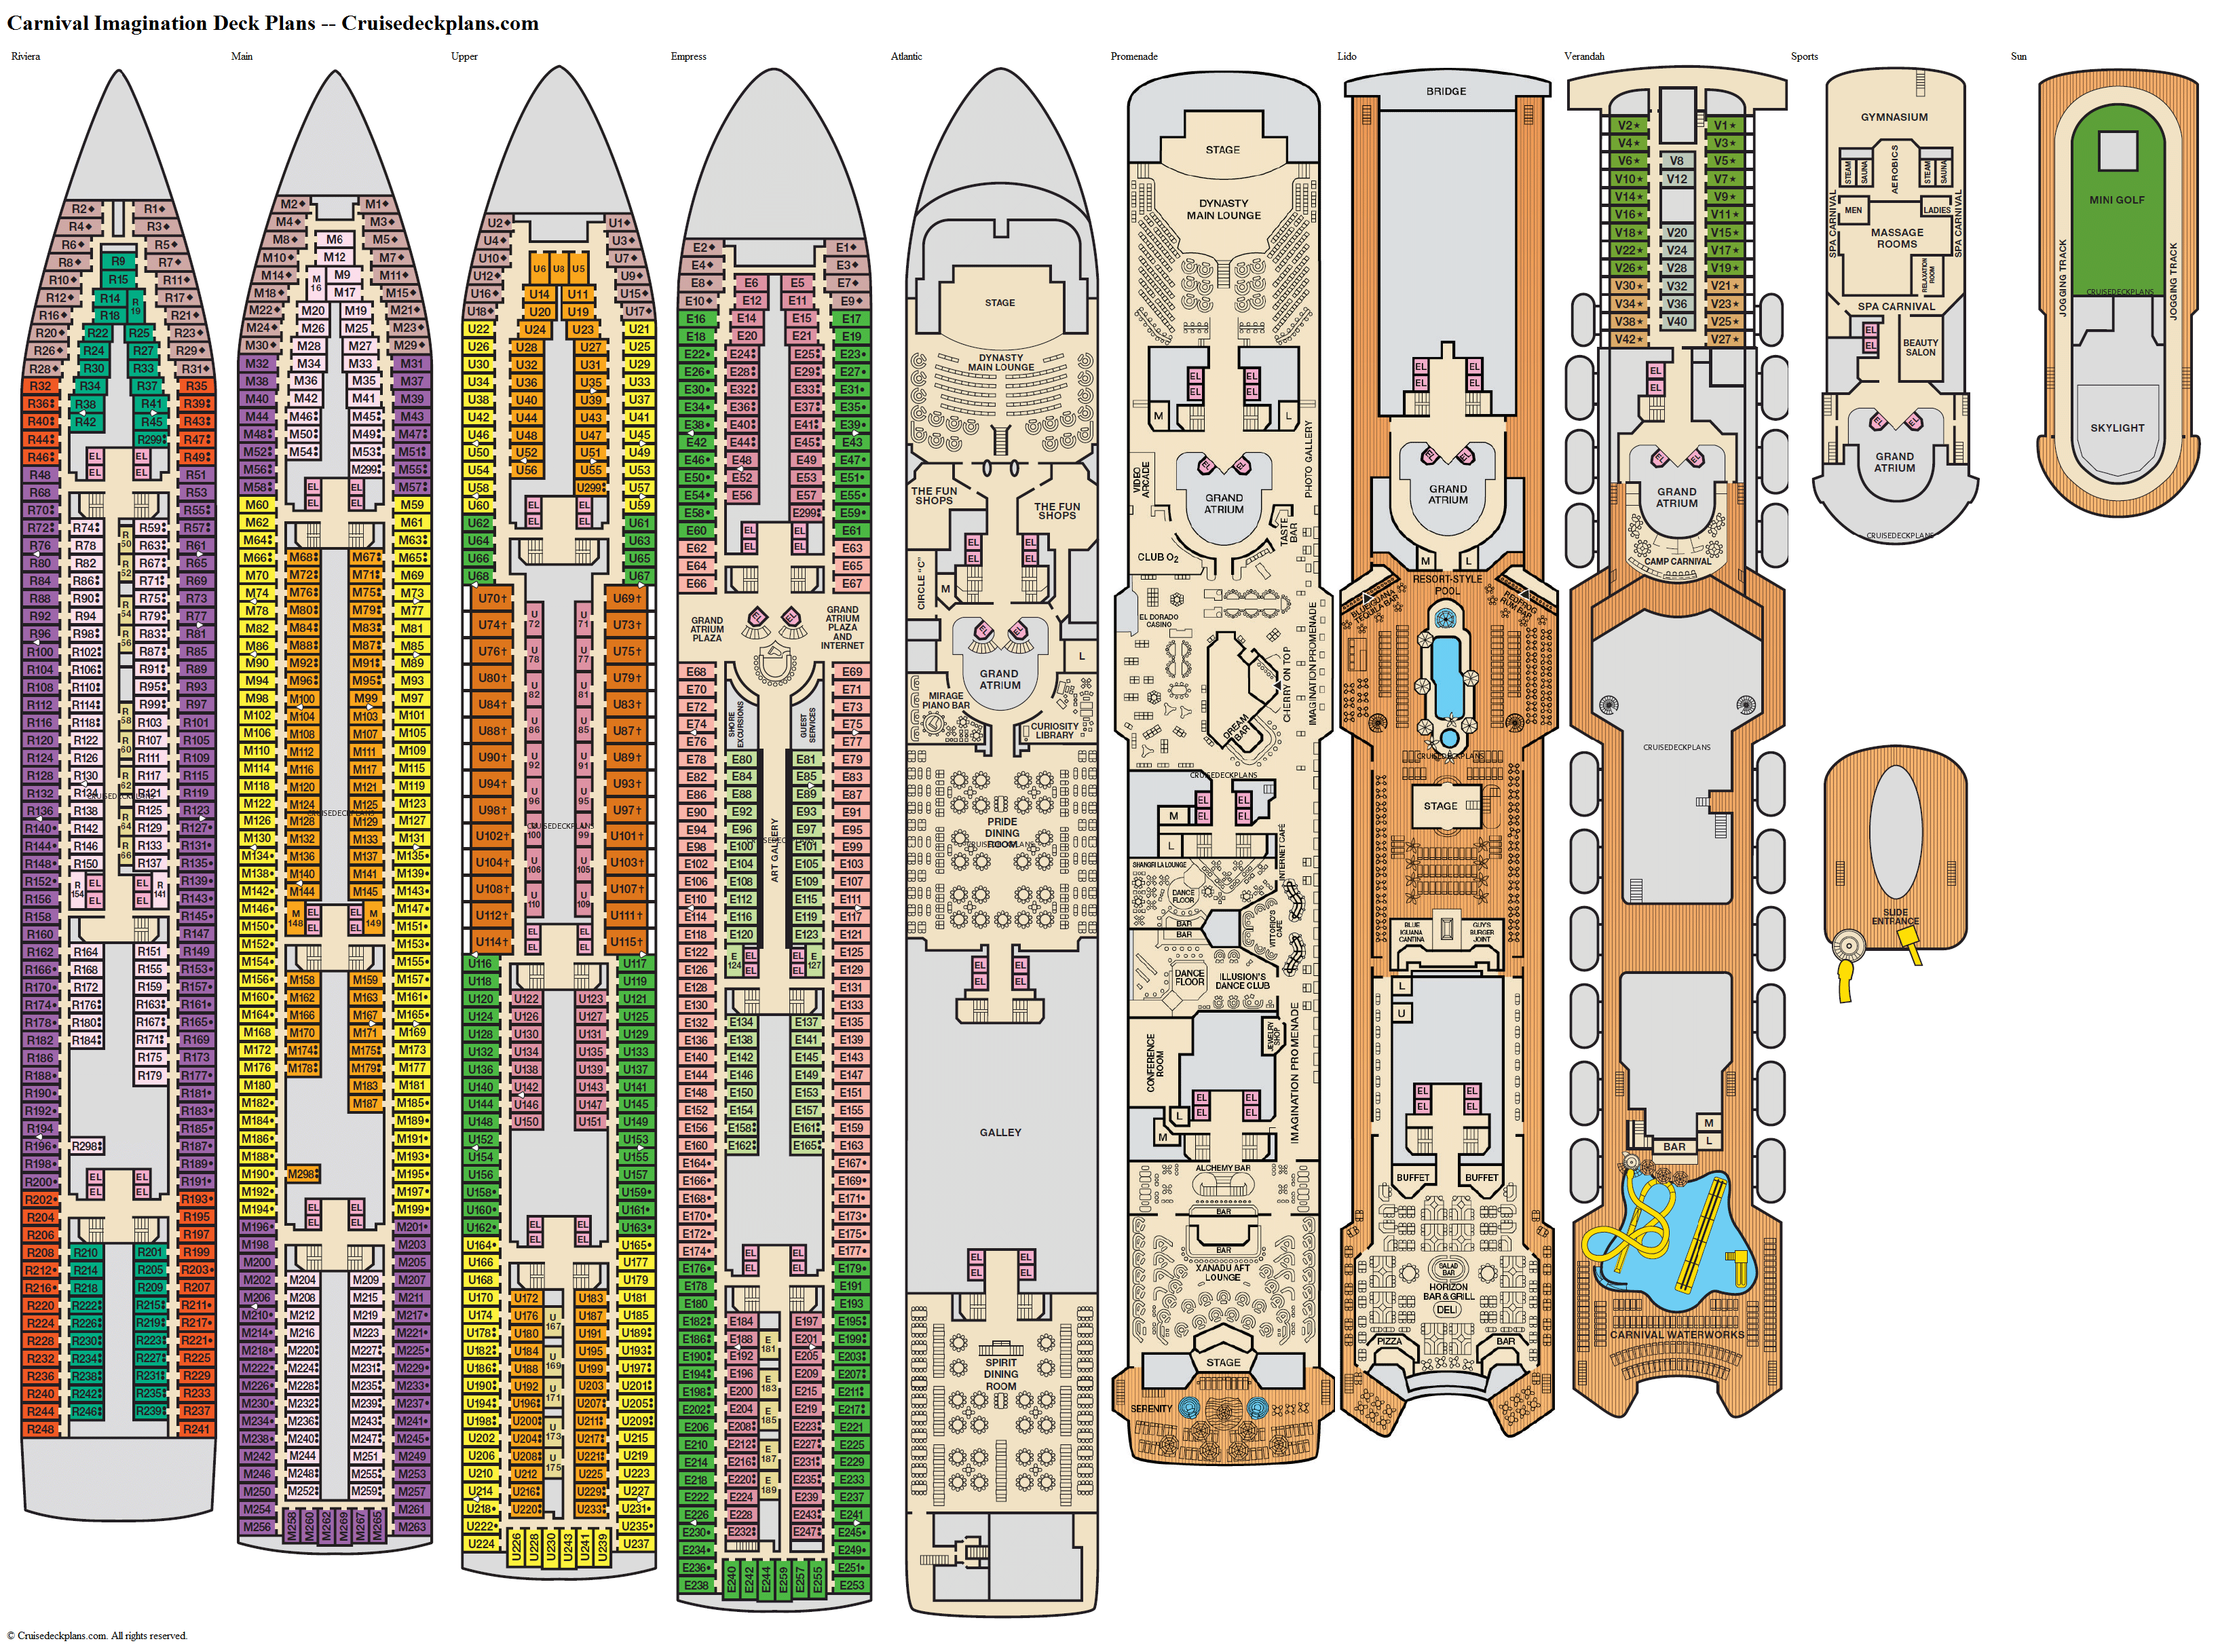 Carnival Imagination deck plans image